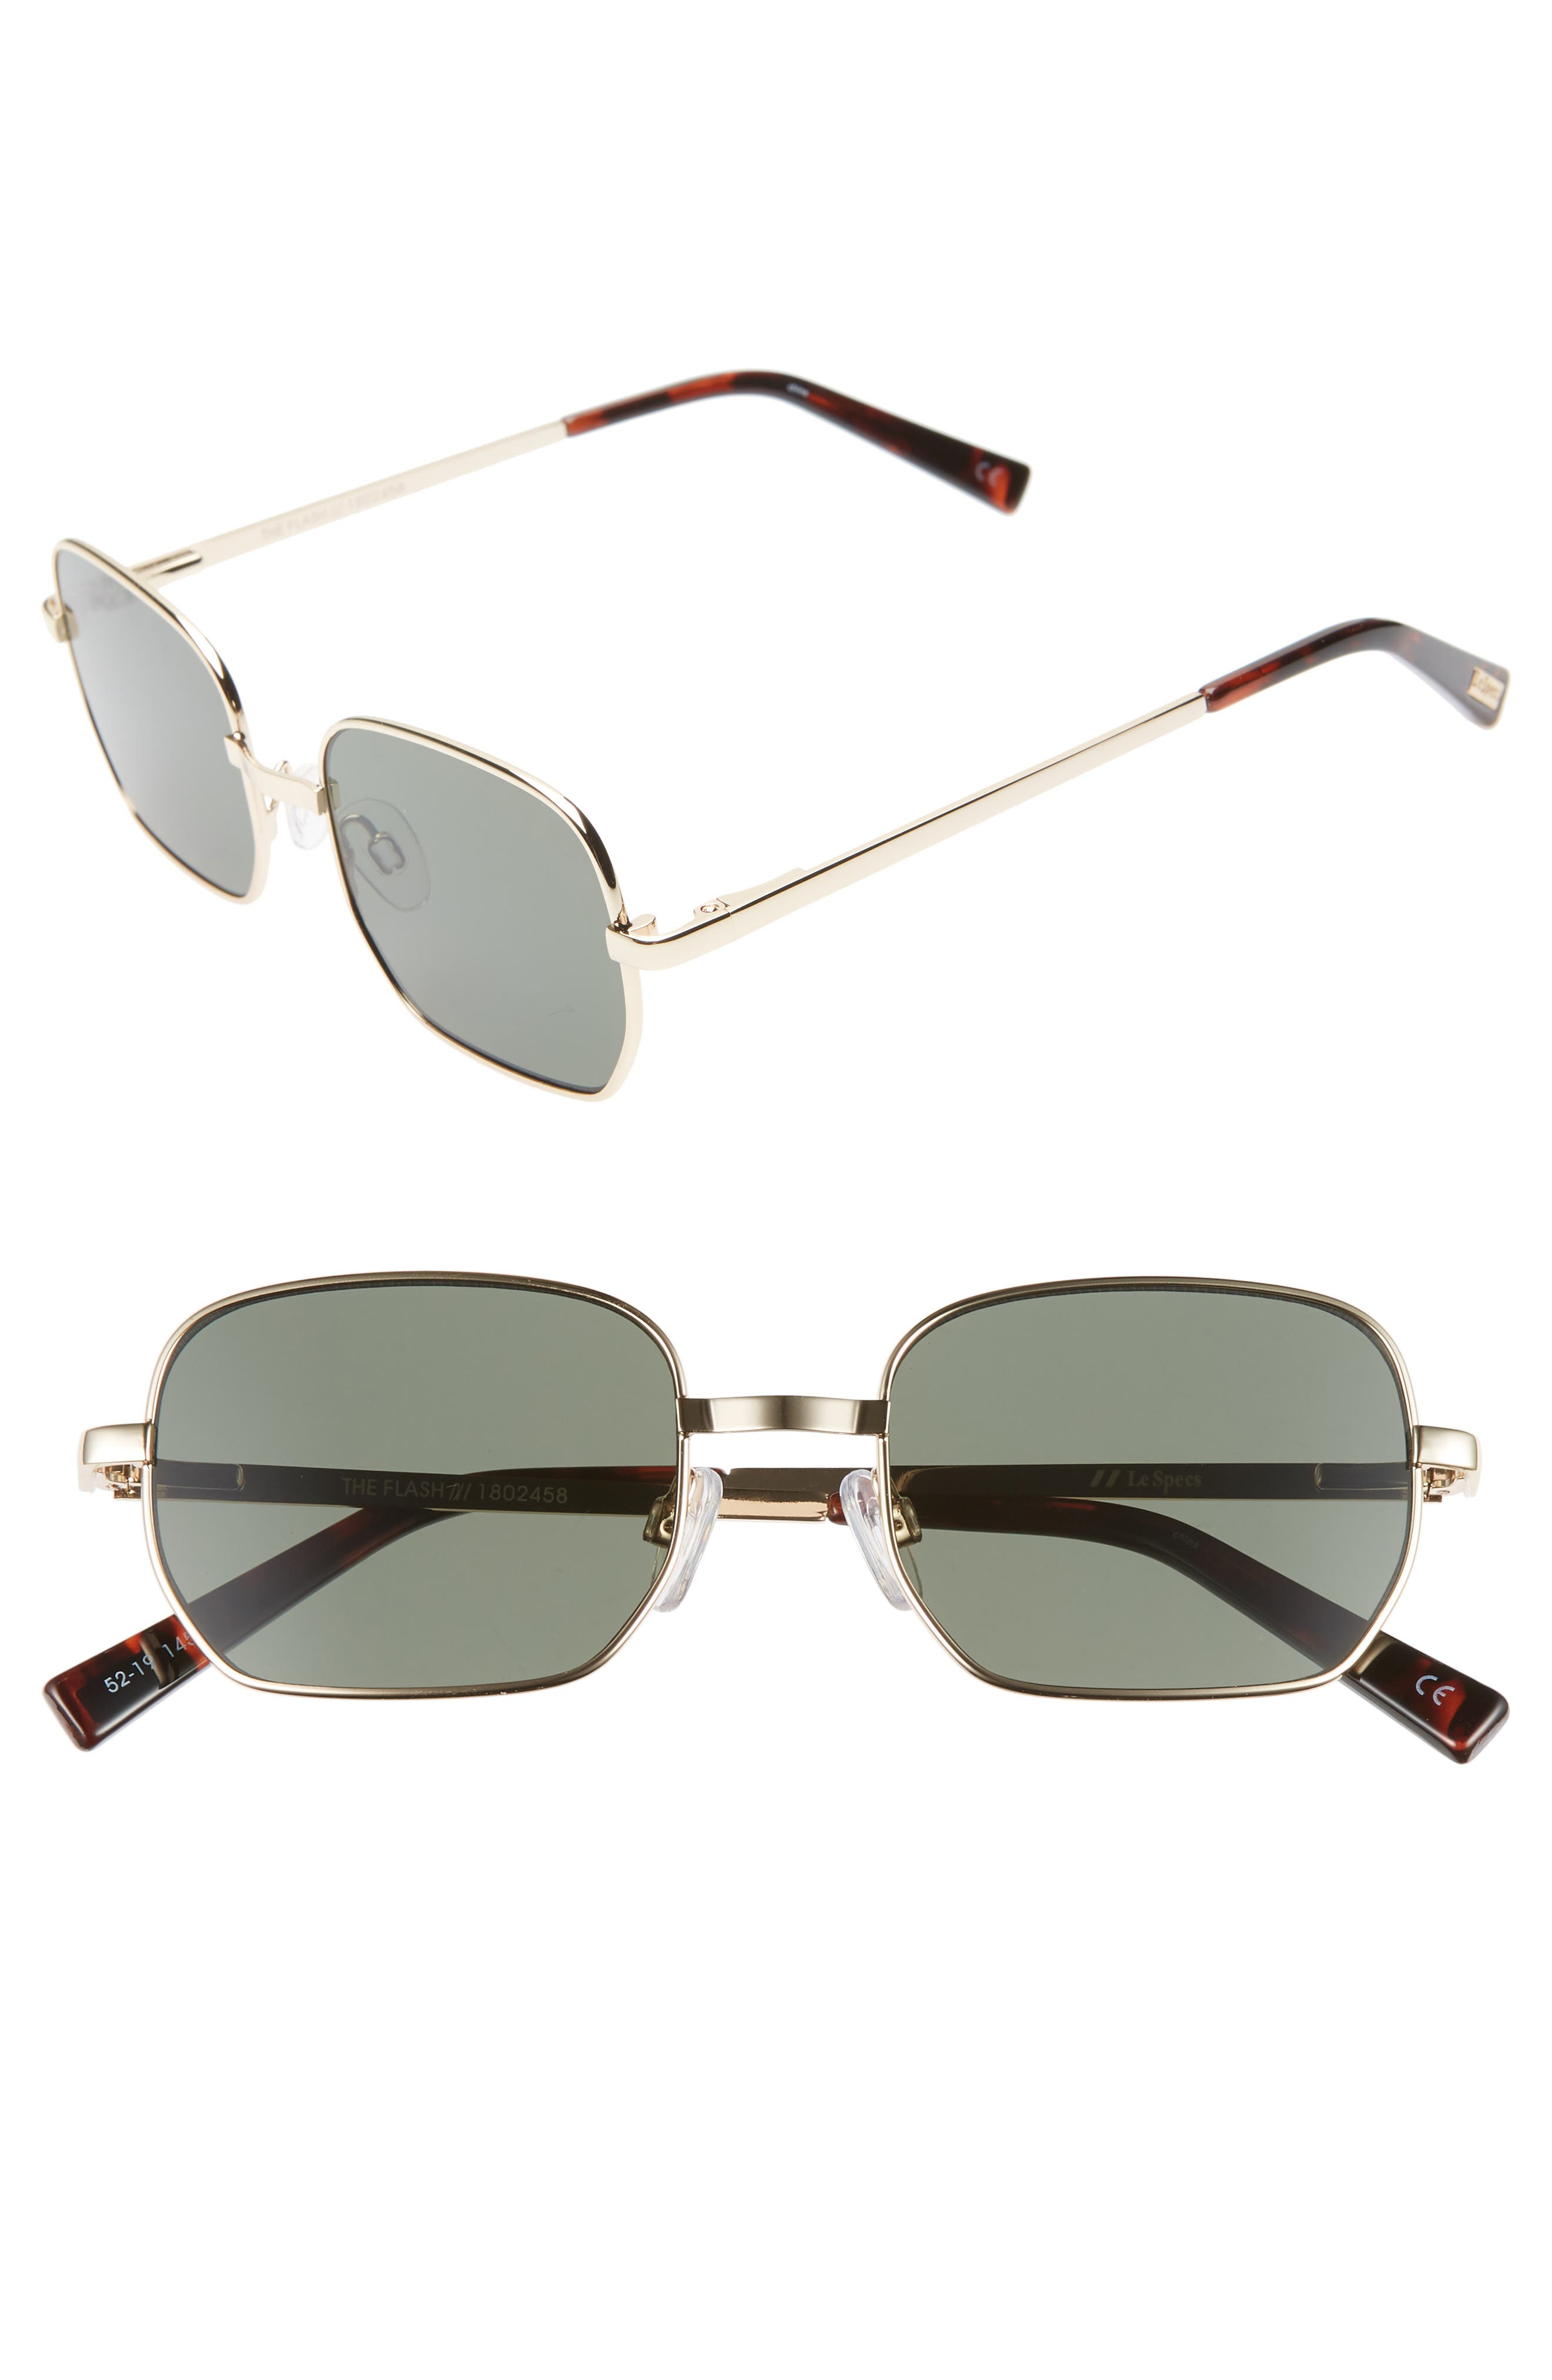 Le Specs The Flash 52Mm Round Sunglasses - Gold